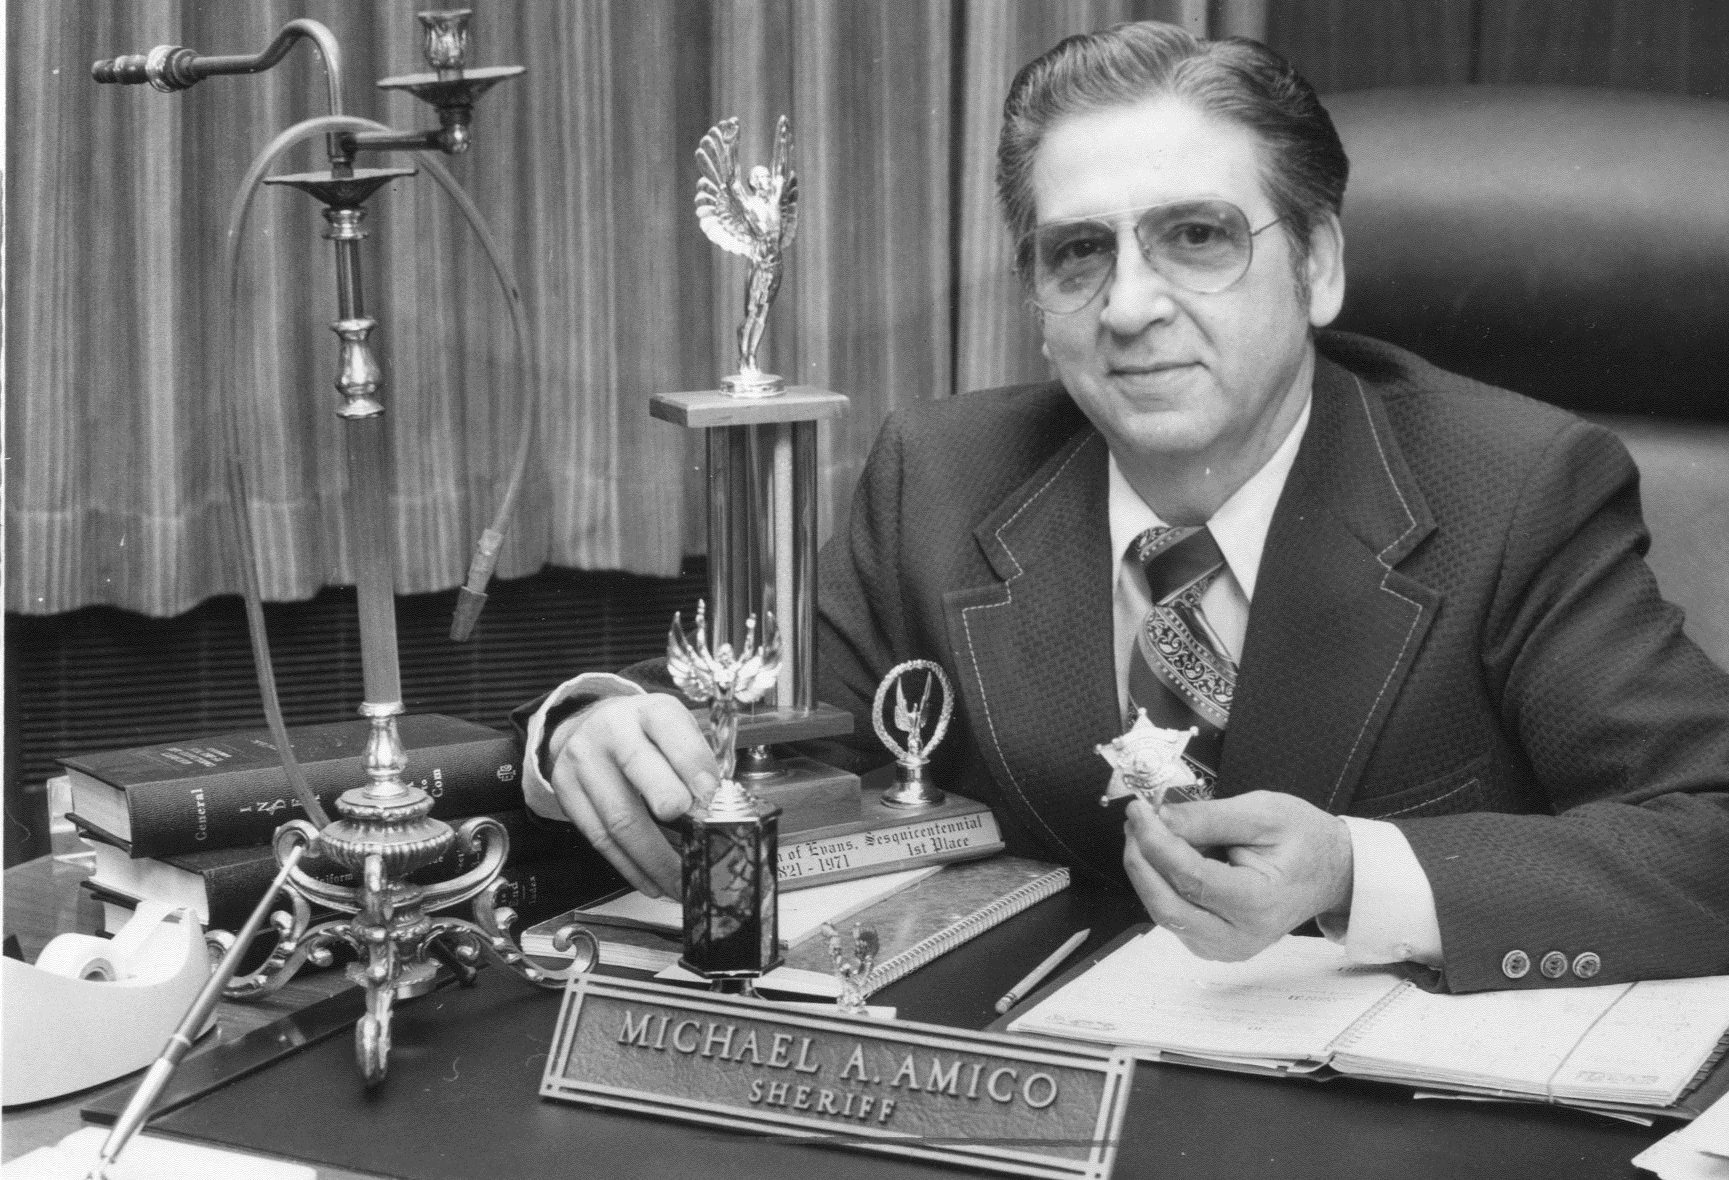 Then-Erie County Sheriff Michael A. Amico cleans out his desk and prepares to leave office in December 1976.